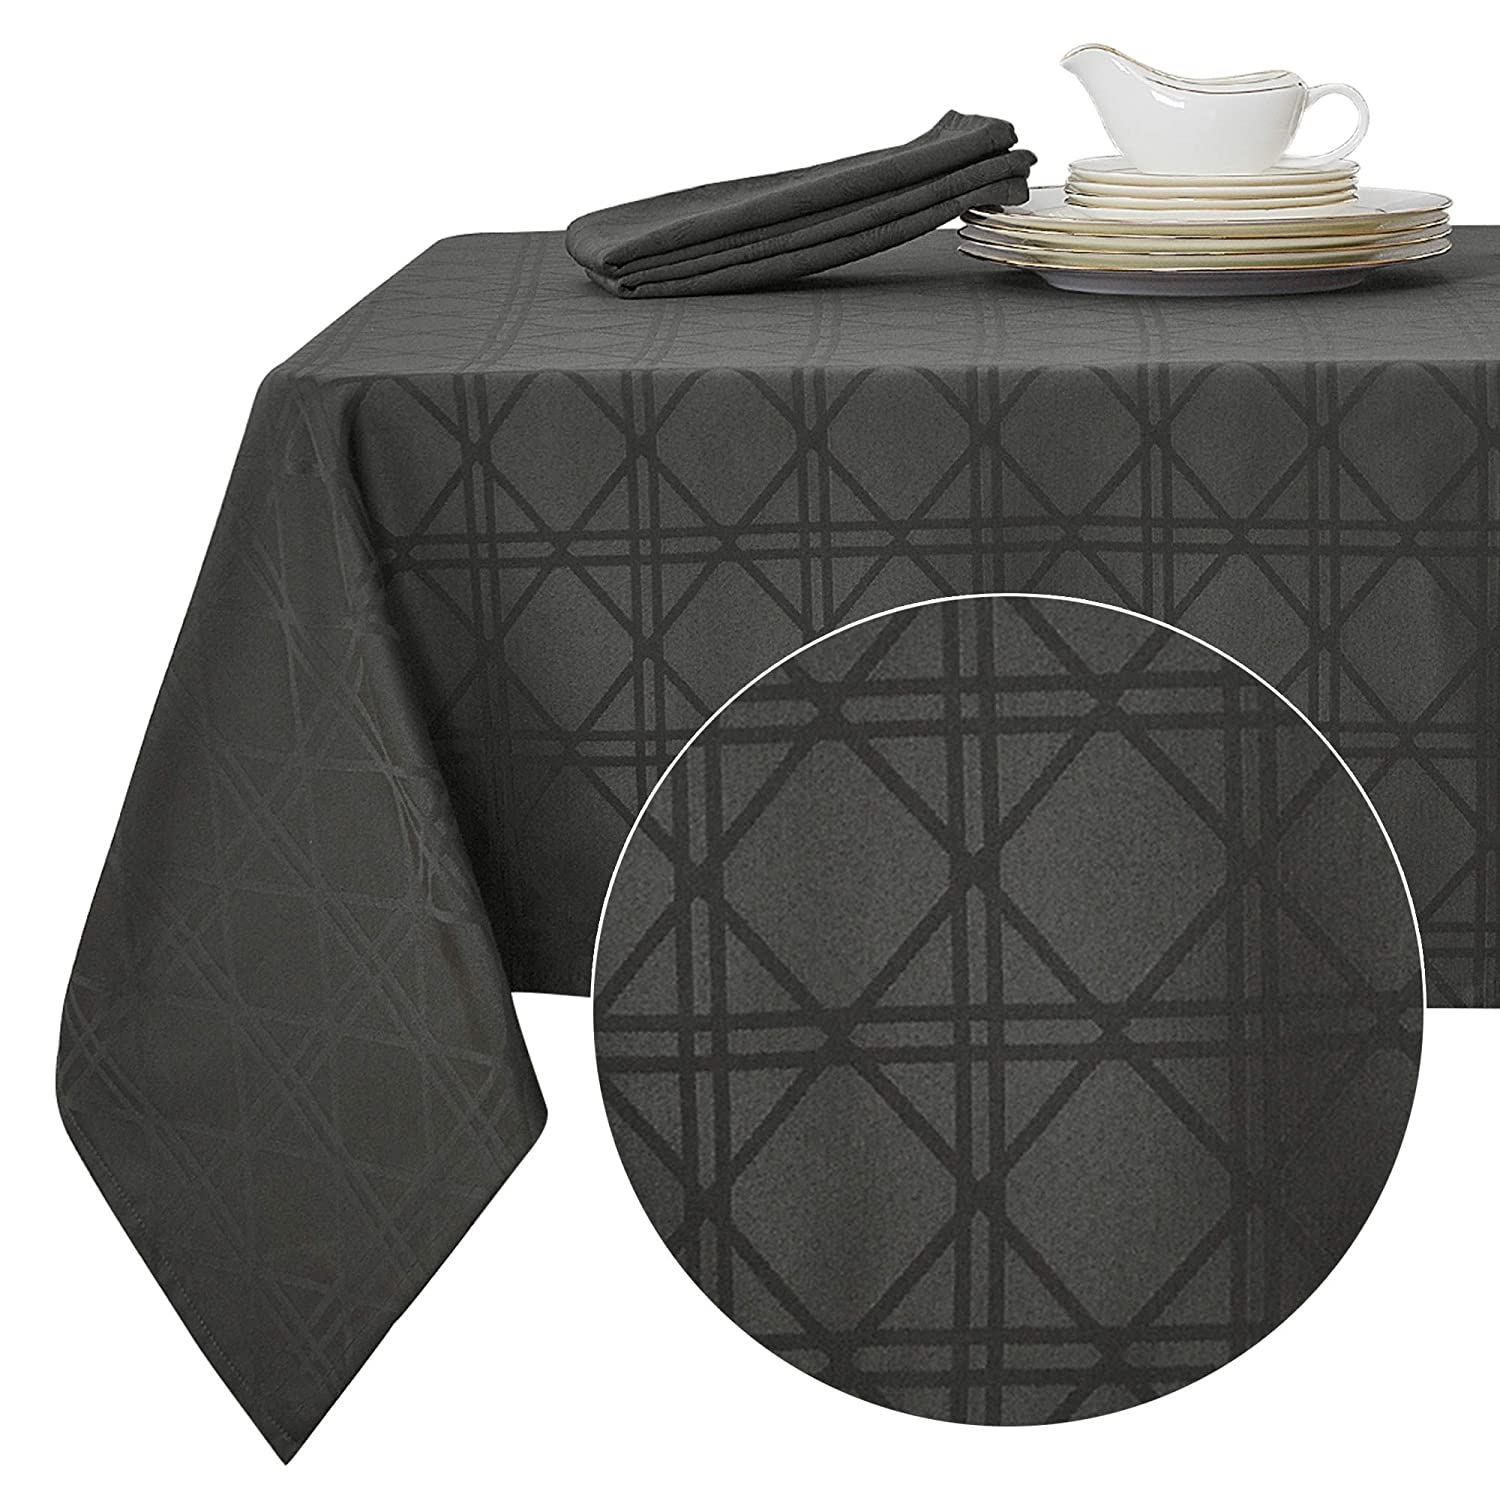 Deconovo Decorative Jacquard Rectangle Tablecloth with Geometric Patterns Wrinkle Resistant and Waterproof Tablecloths for Dining Room 60 x 84 inch Grey